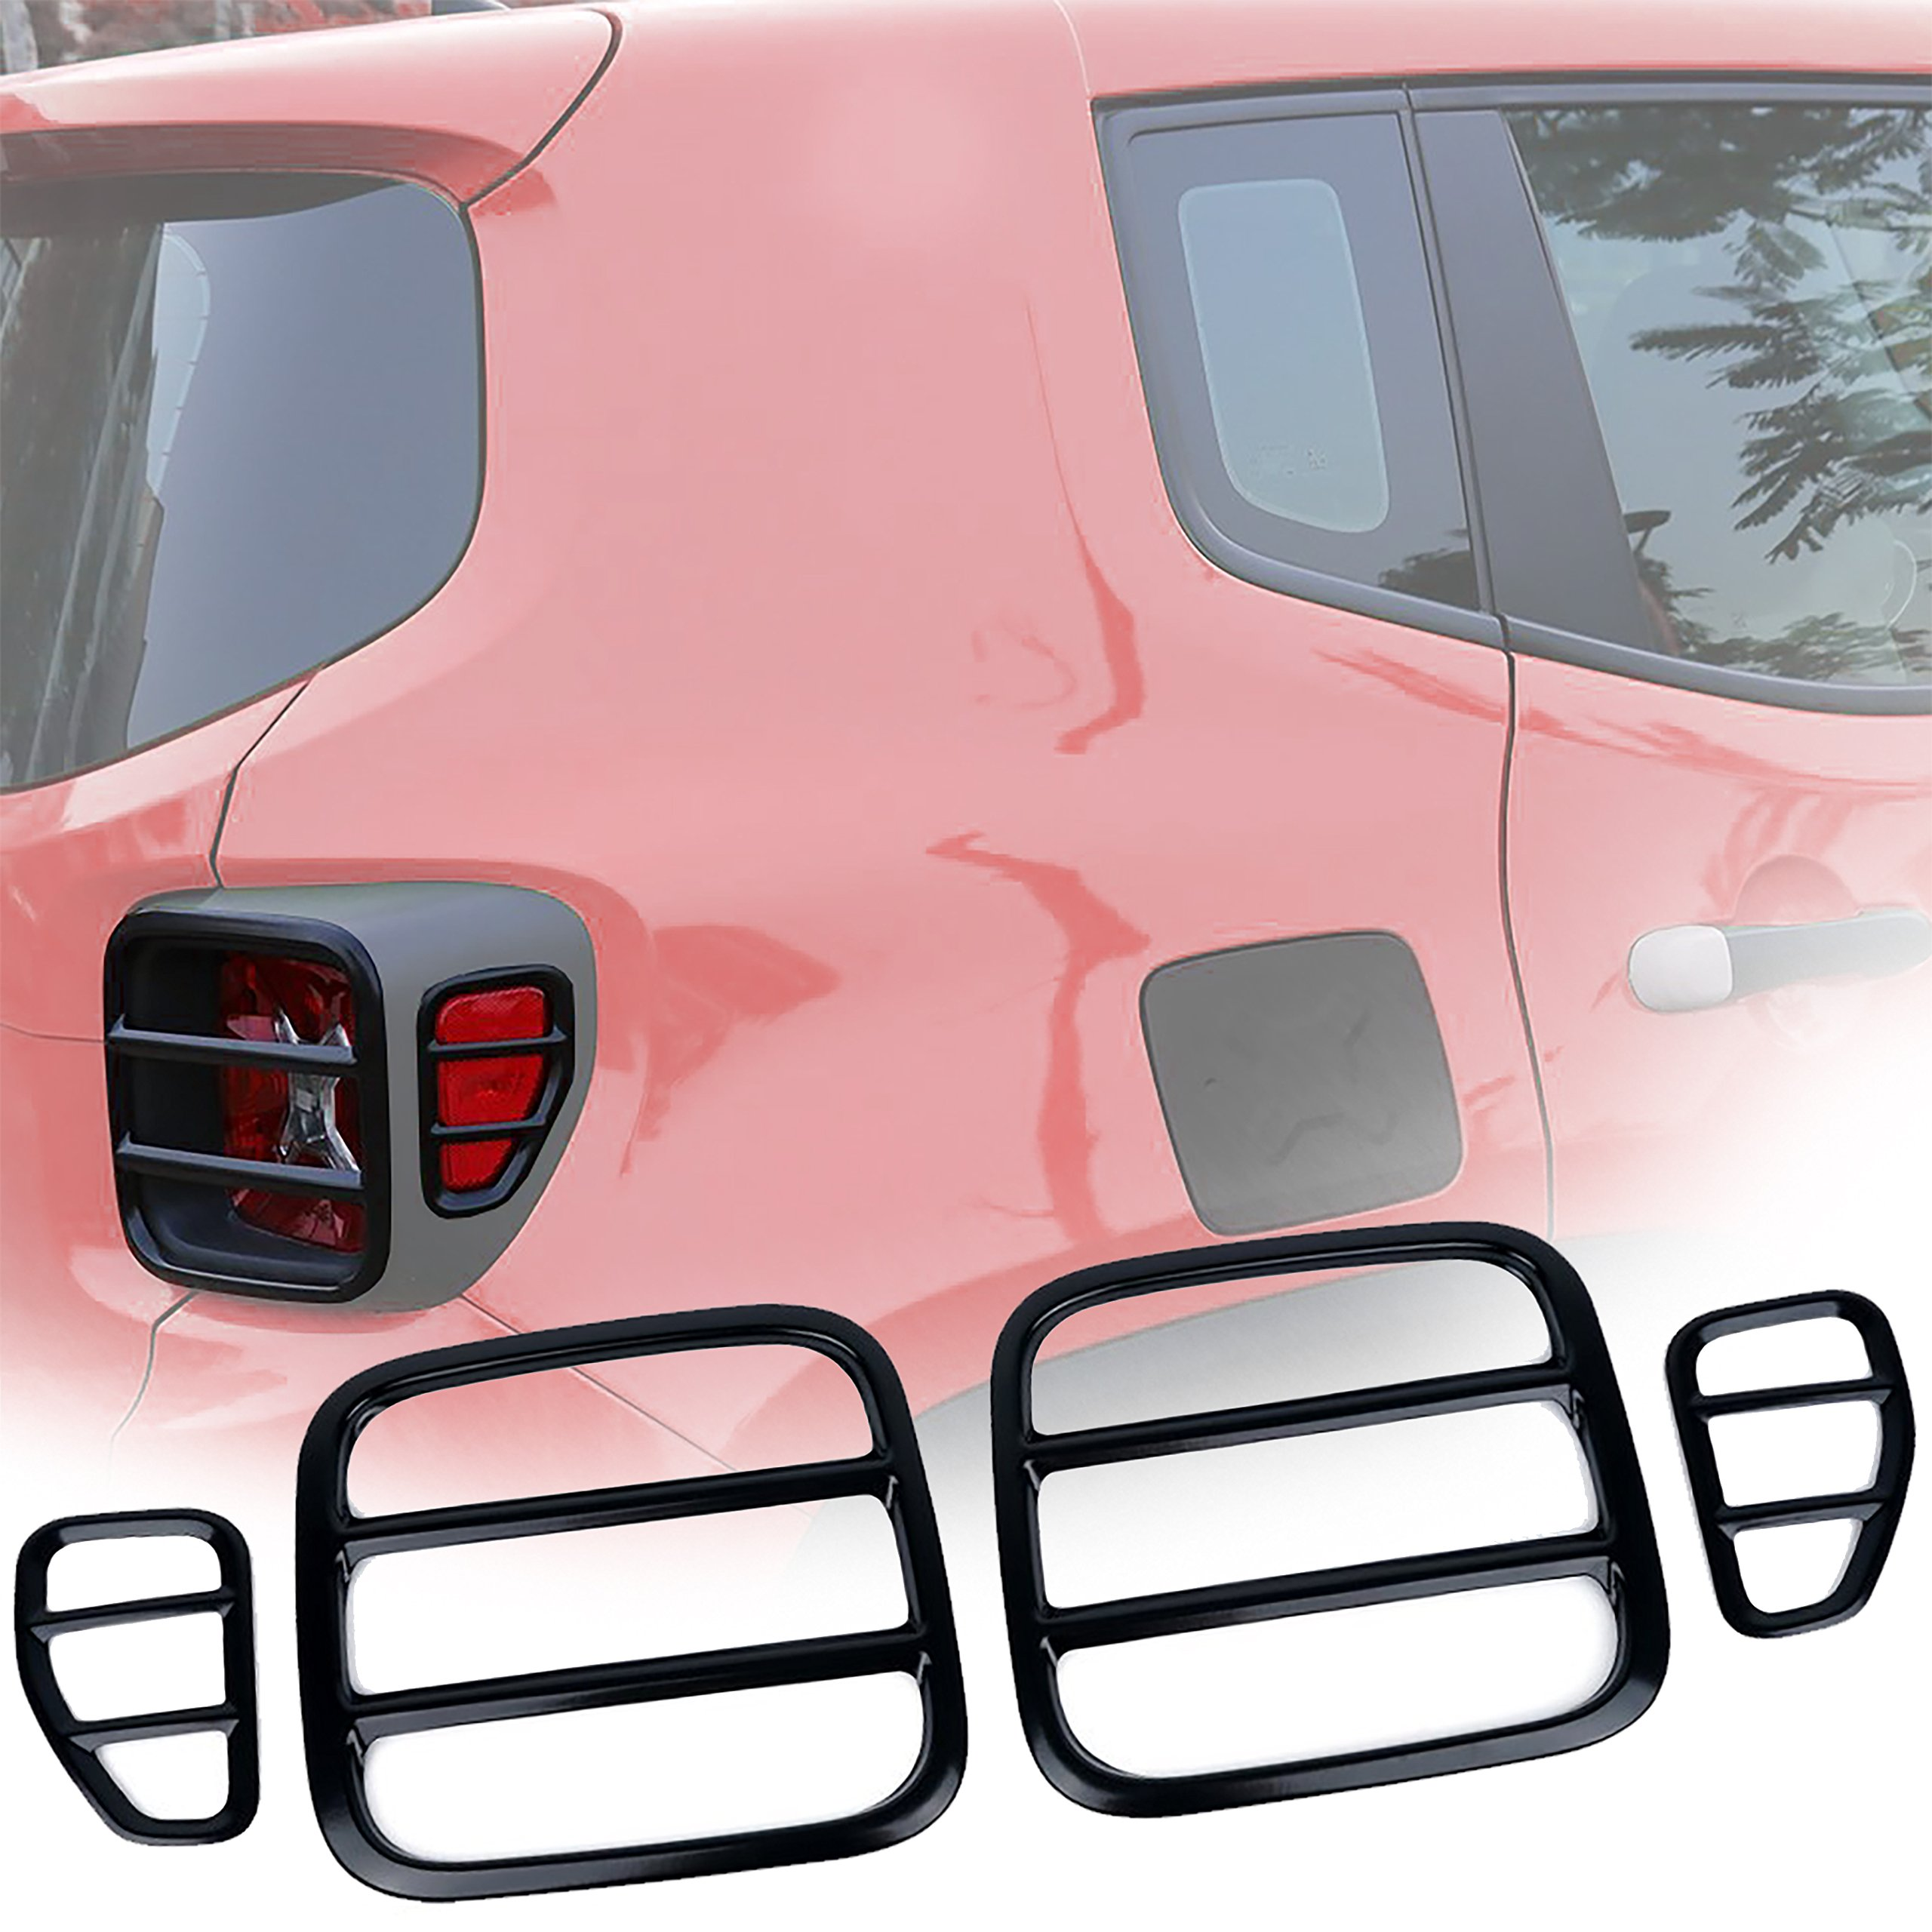 EnRand Jeep Renegade Tail Light Cover, Black Anti-Oxidation Metal Taillight Rear Lamp Protector Guard Cover for Jeep Renegade 2015 2016 2017 2018